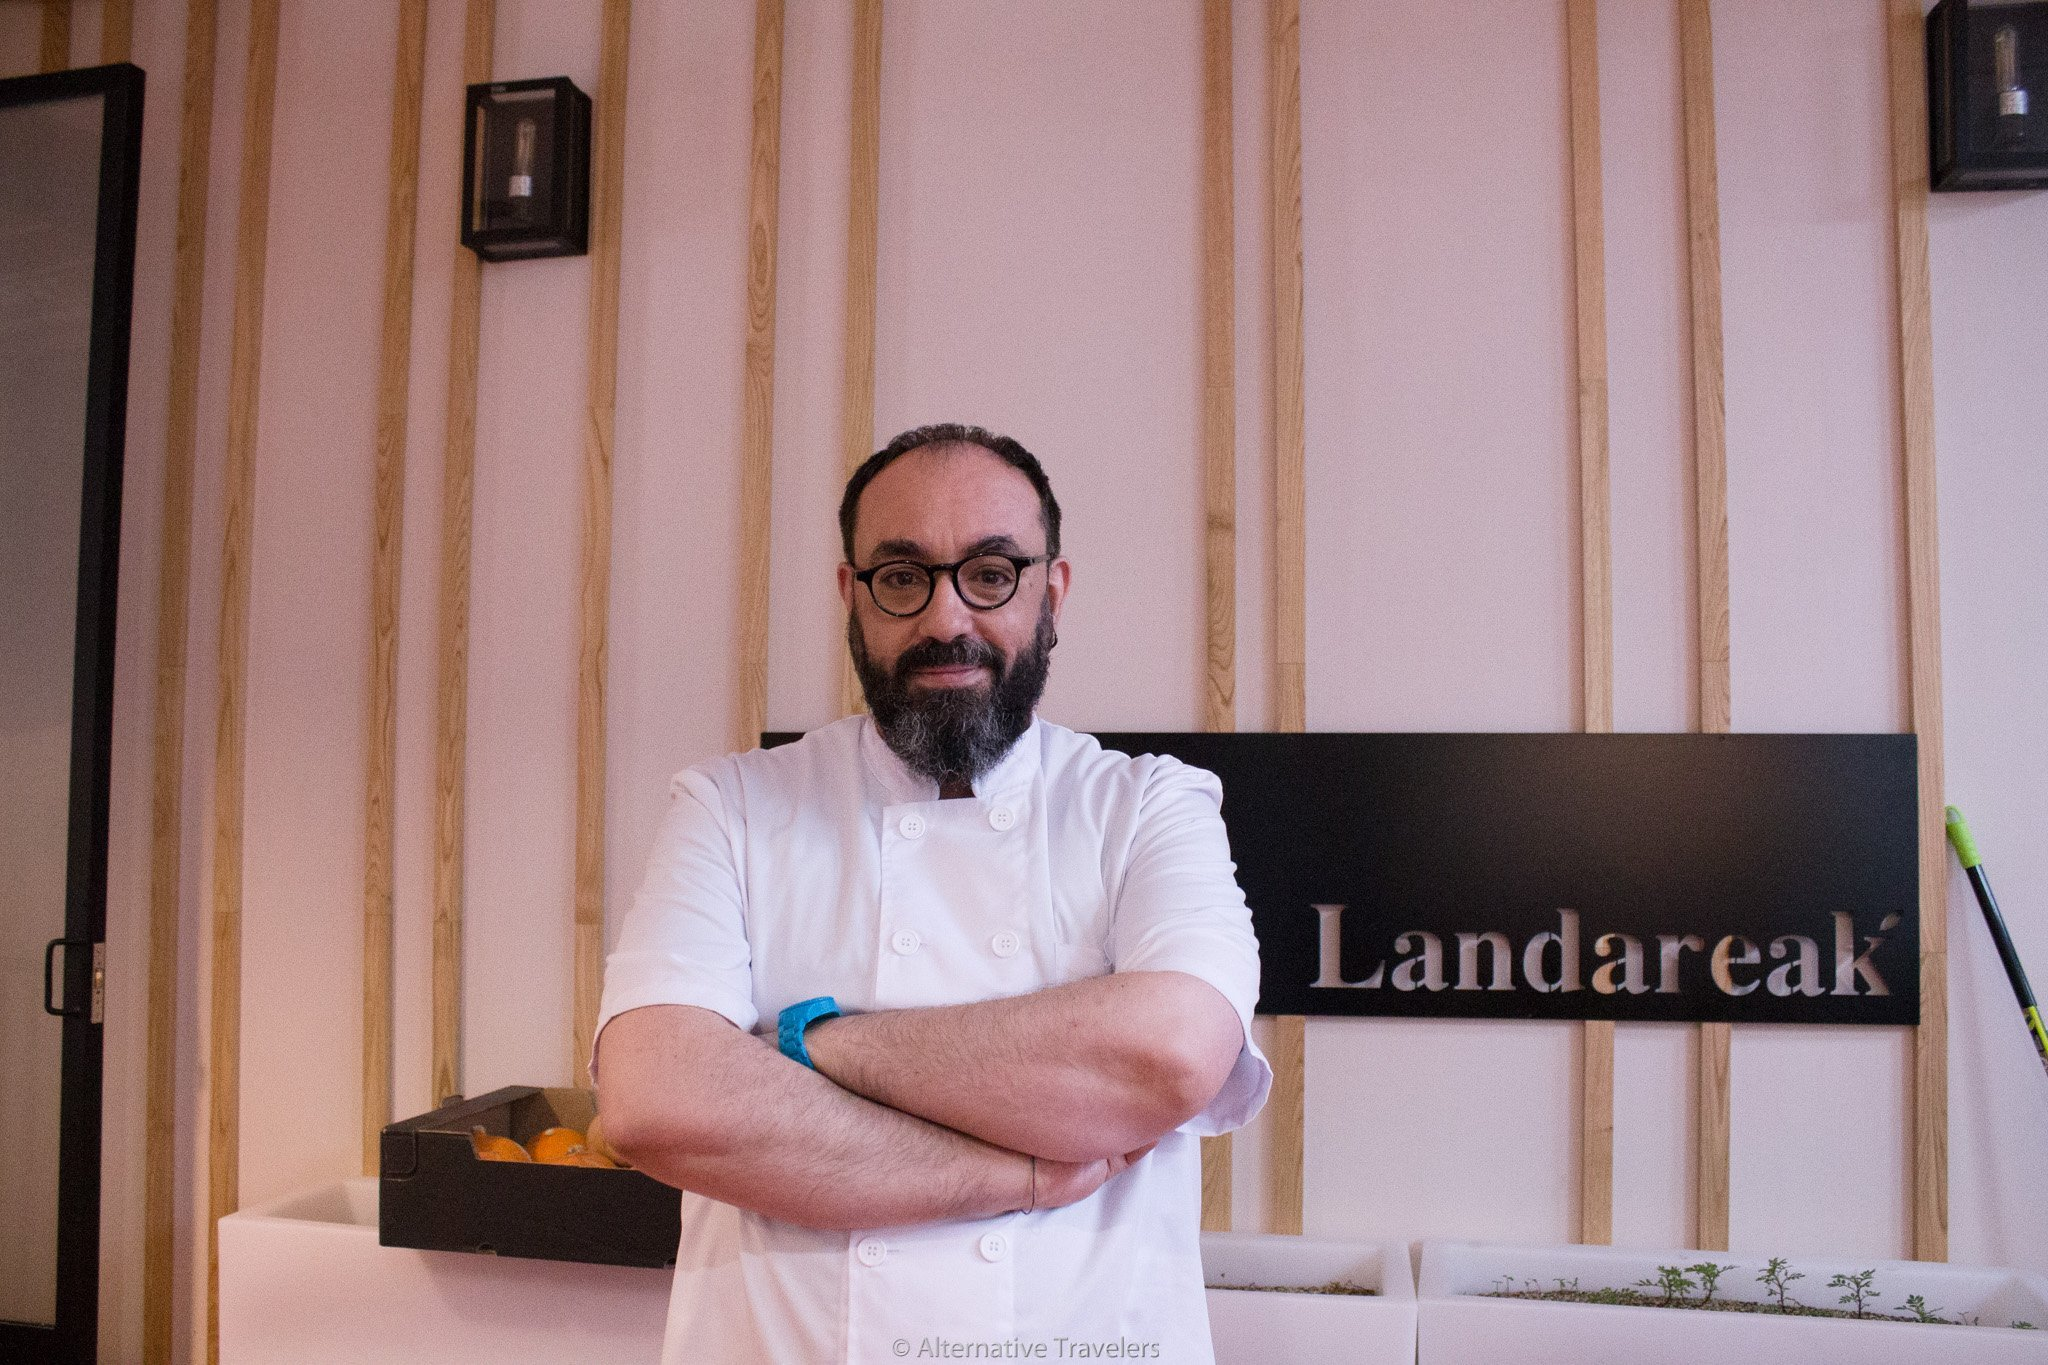 Julian, the chef and owner of Landareak, a vegan restaurant in Madrid.